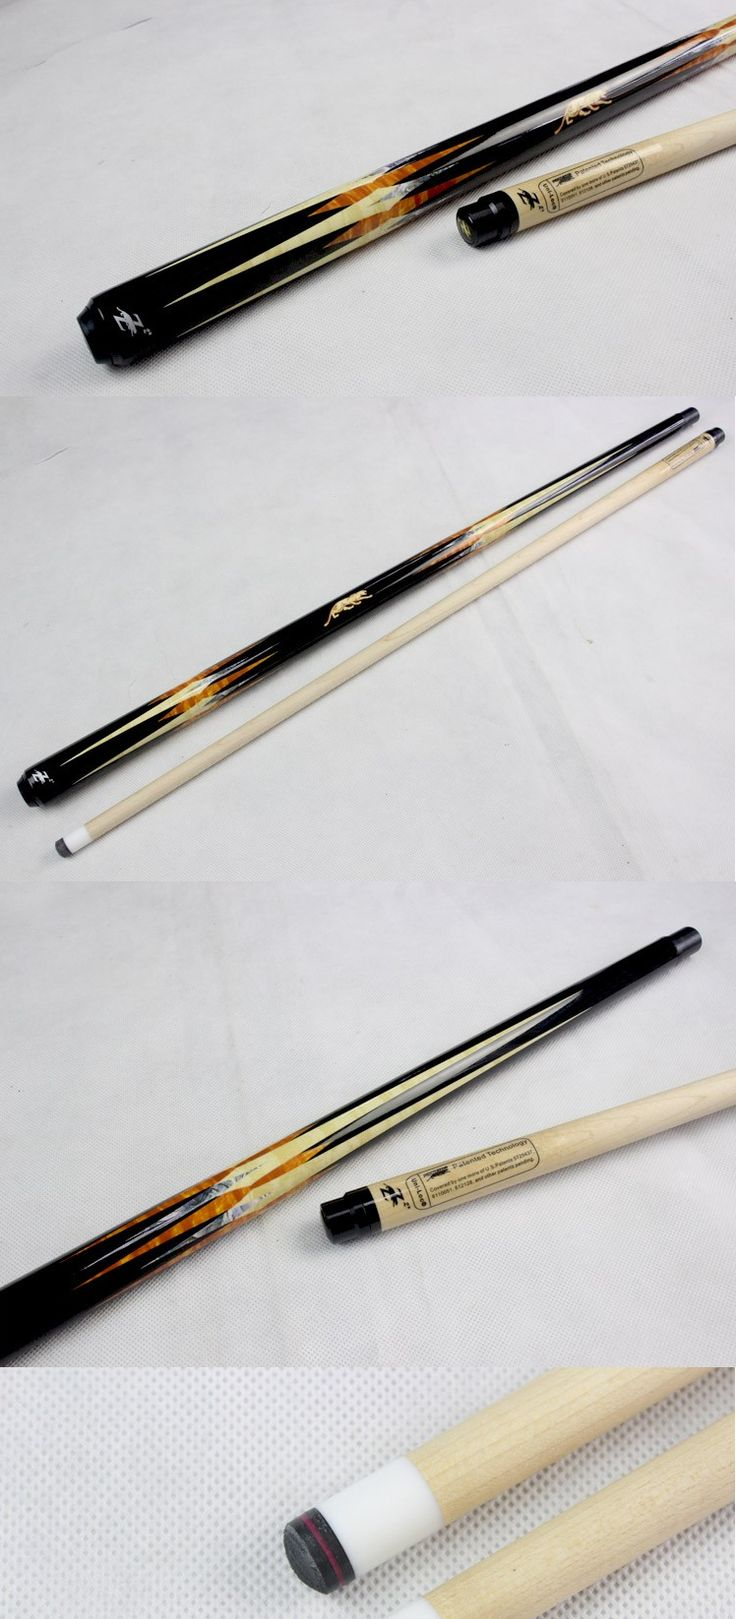 Cue Tips 75188: New Taco De Sinuca Pool Cues Billiard 13Mm Tips 1 2 Jointed Pool Cue Stick China -> BUY IT NOW ONLY: $132.72 on eBay!